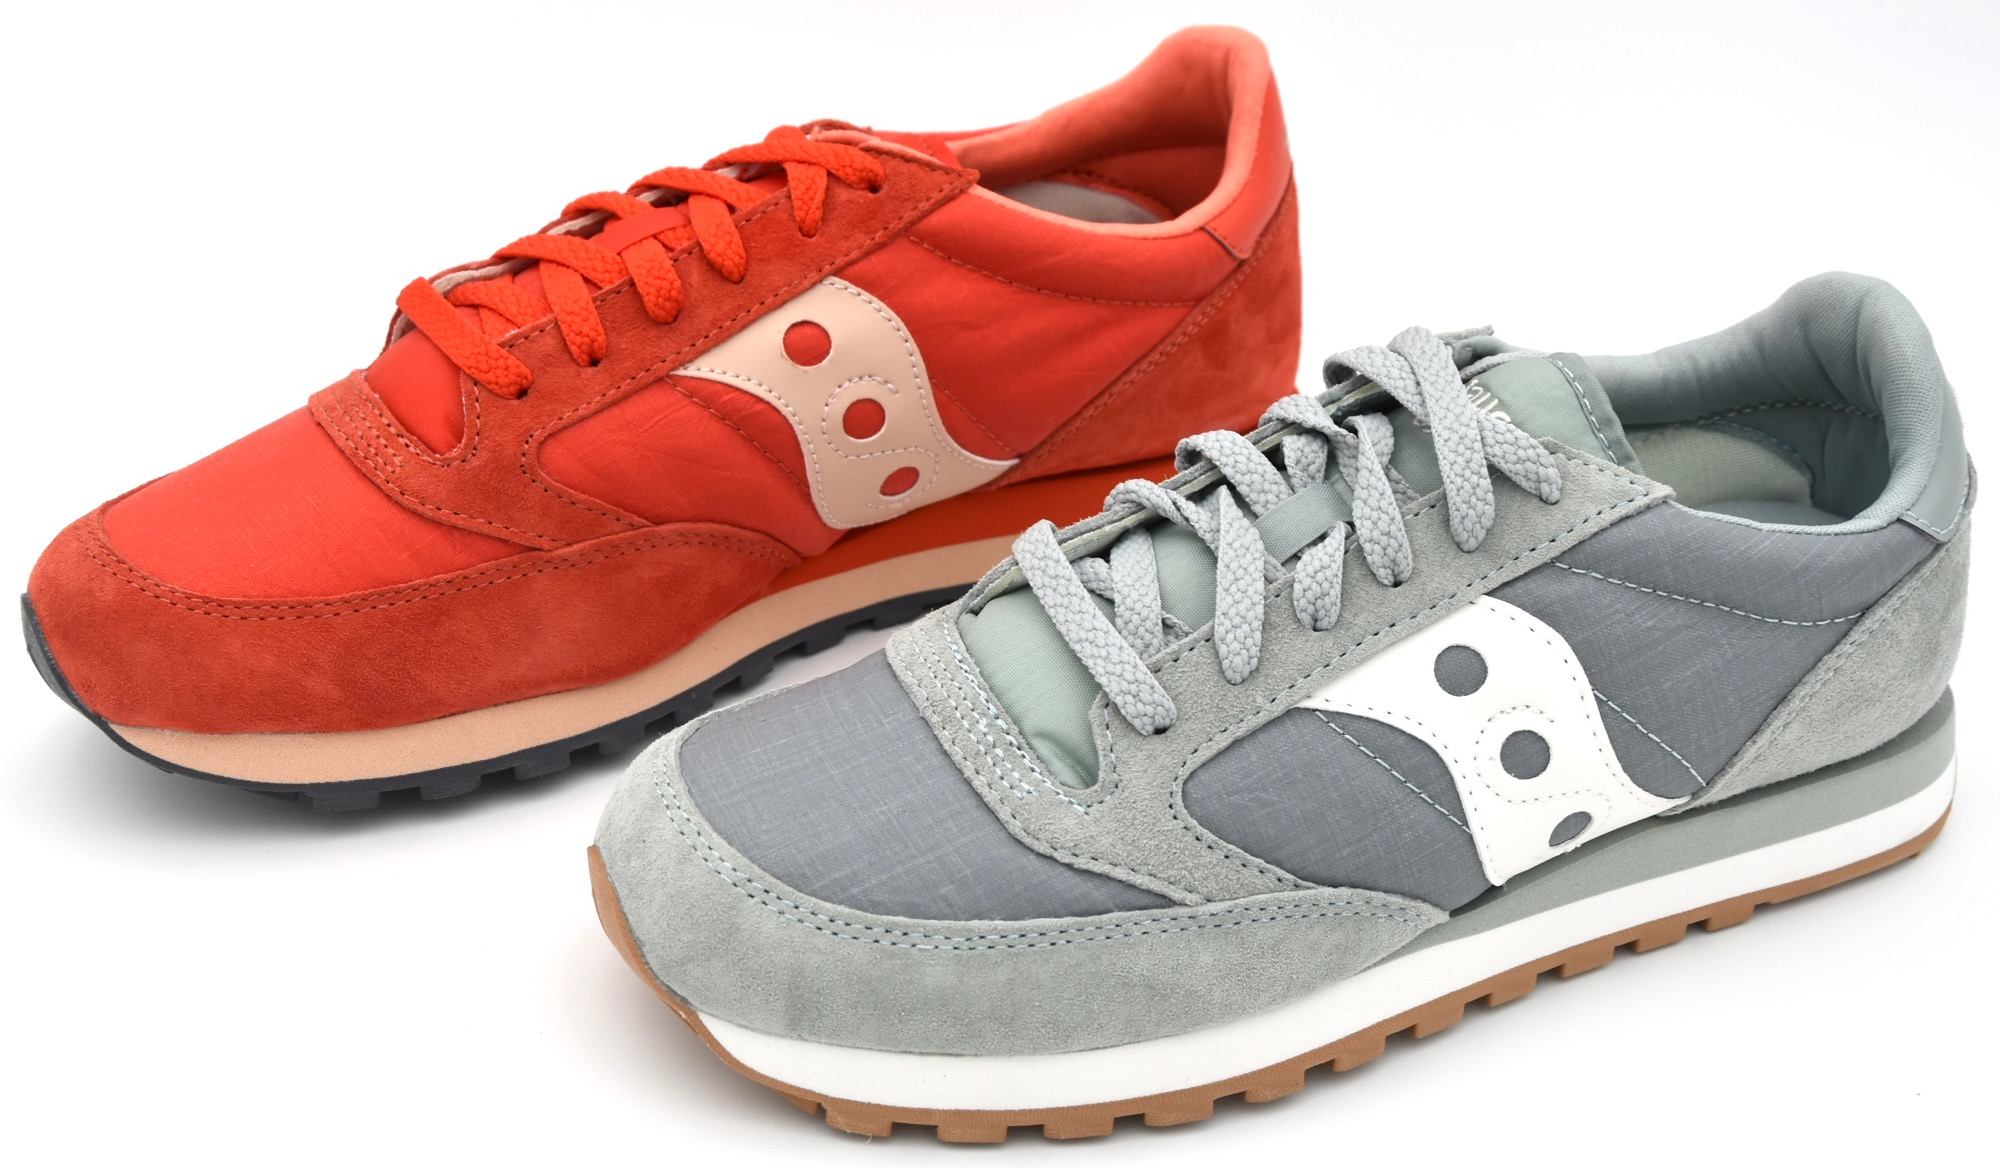 S70353-2 Brand New Saucony Jazz Original CL Men/'s Athletic Fashion Sneakers